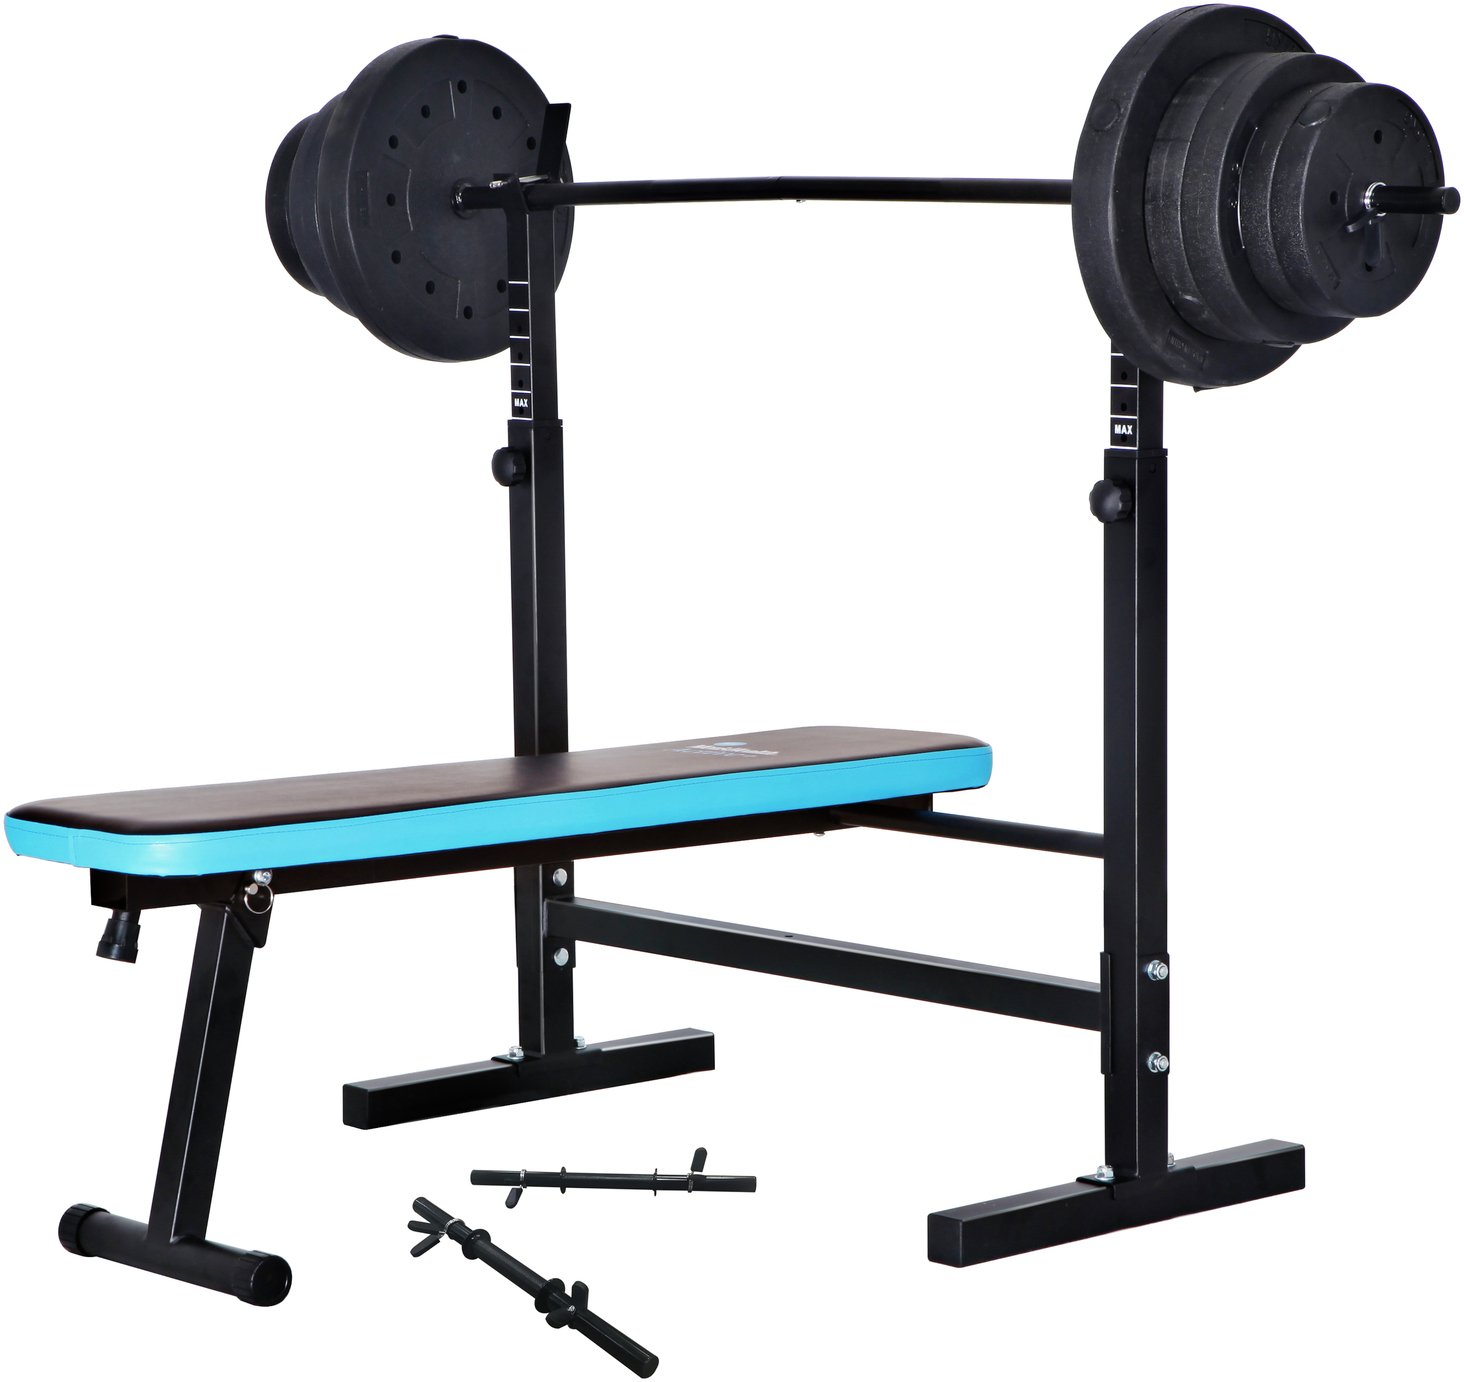 'Men's Health Folding Bench With 50kg Weights